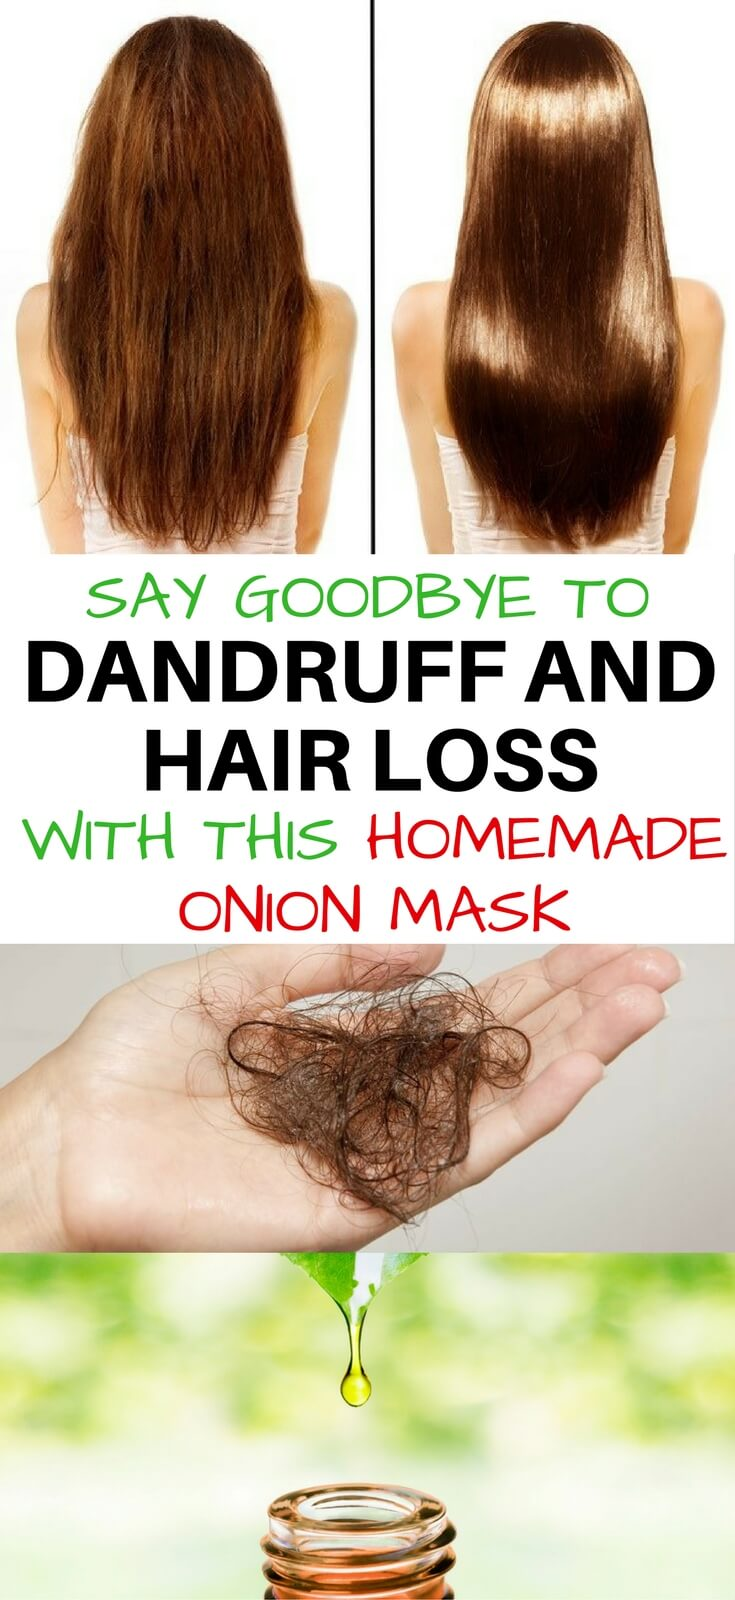 SAY GOODBYE TO HAIR LOSS AND DANDRUFF HOMEMADE HAIR OIL